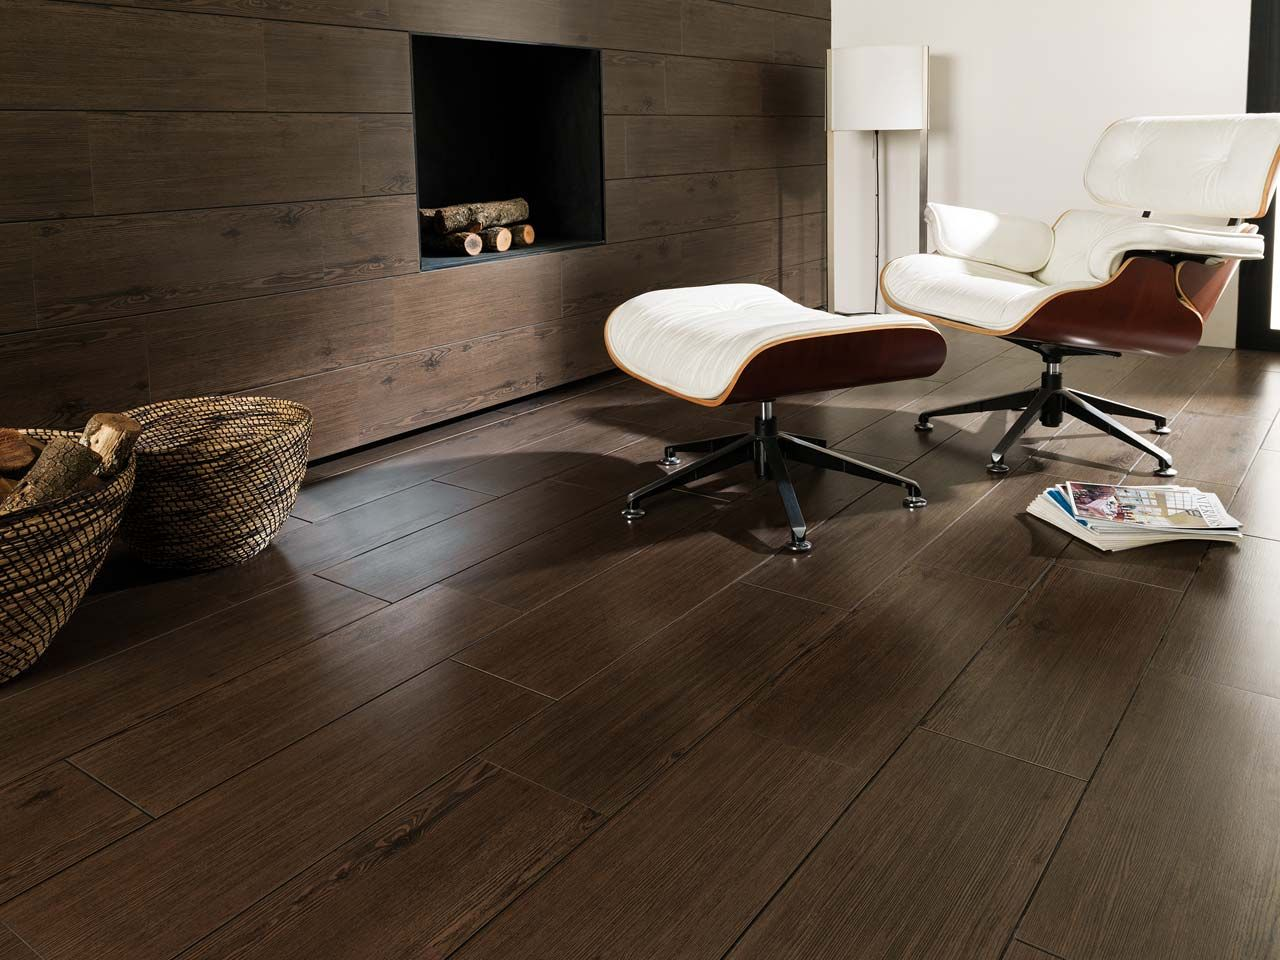 Ceramic Parquet Is Currently A Highly Valued Option When